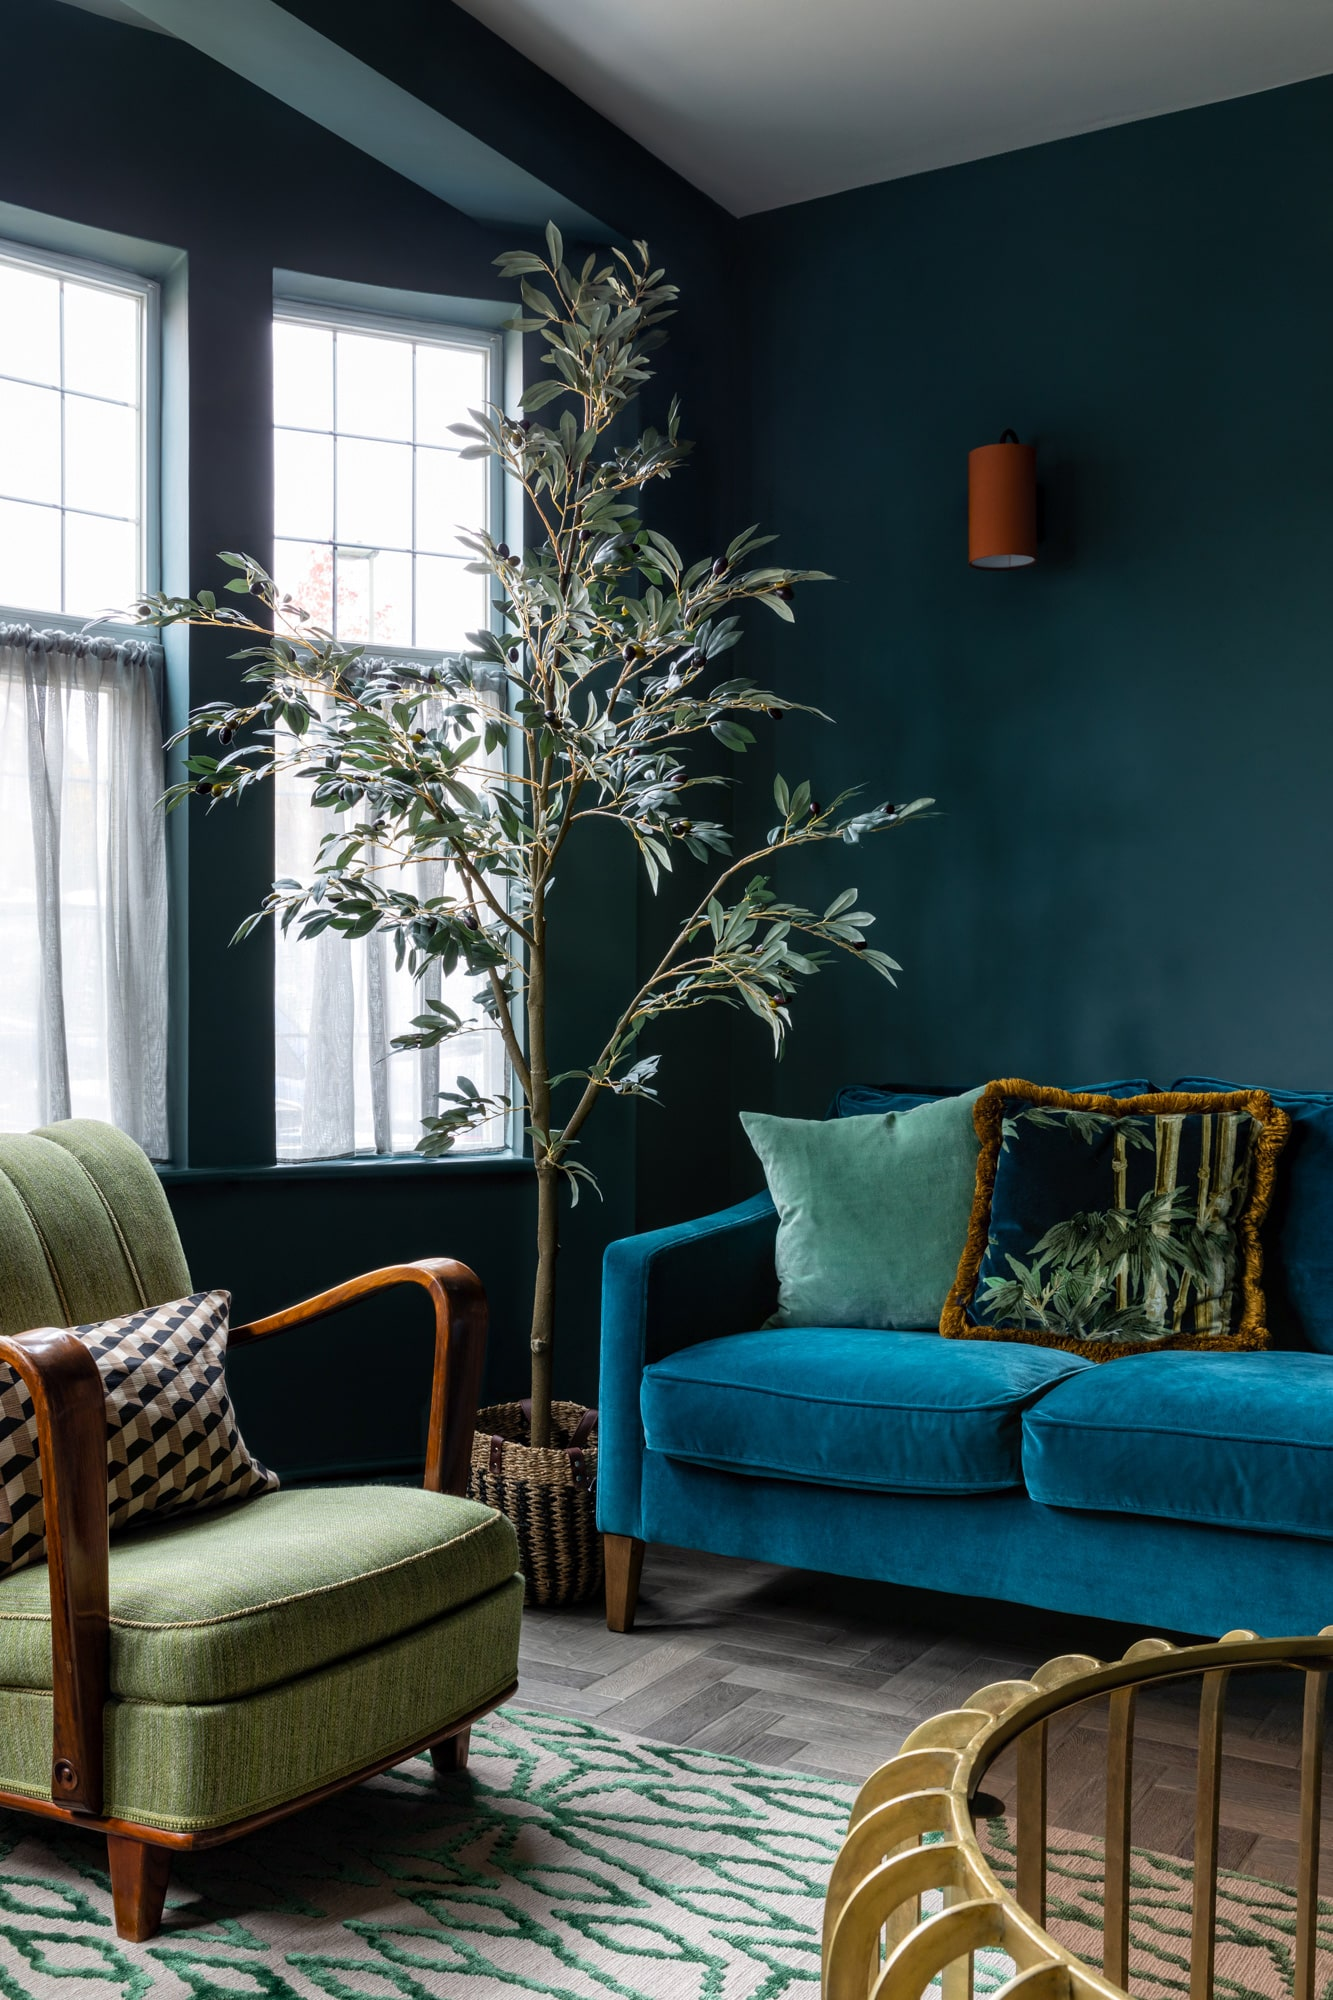 An overview interior design detail image: a living room with dark blue walls, teal sofa, two green armchairs and a gold metal coffee table with a glass top